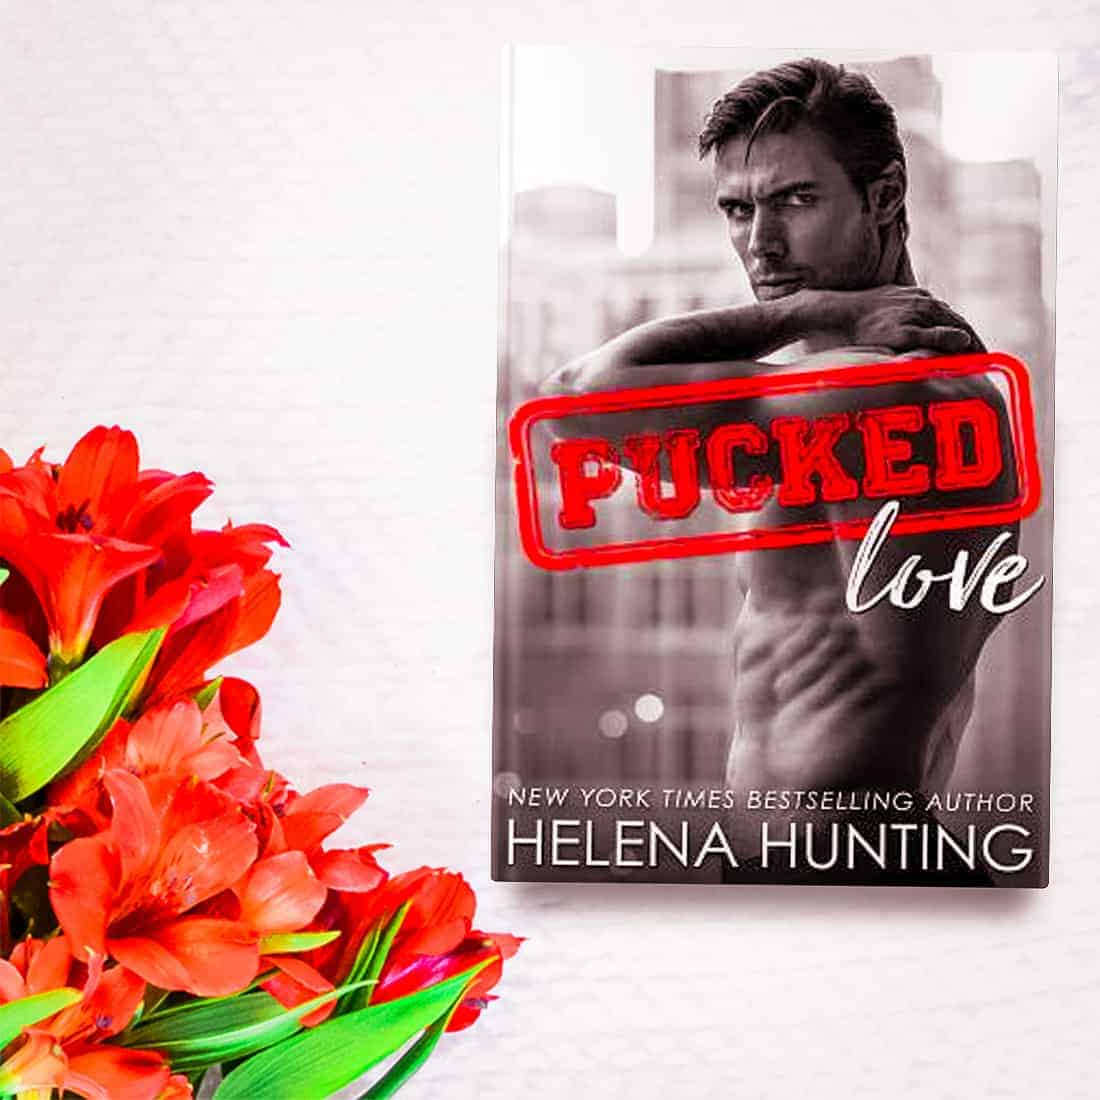 Pucked Love by Helena Hunting is the Pucked series finale and long-awaited hockey romance book where the friends-with-benefits characters, Darren and Charlene, finally become more